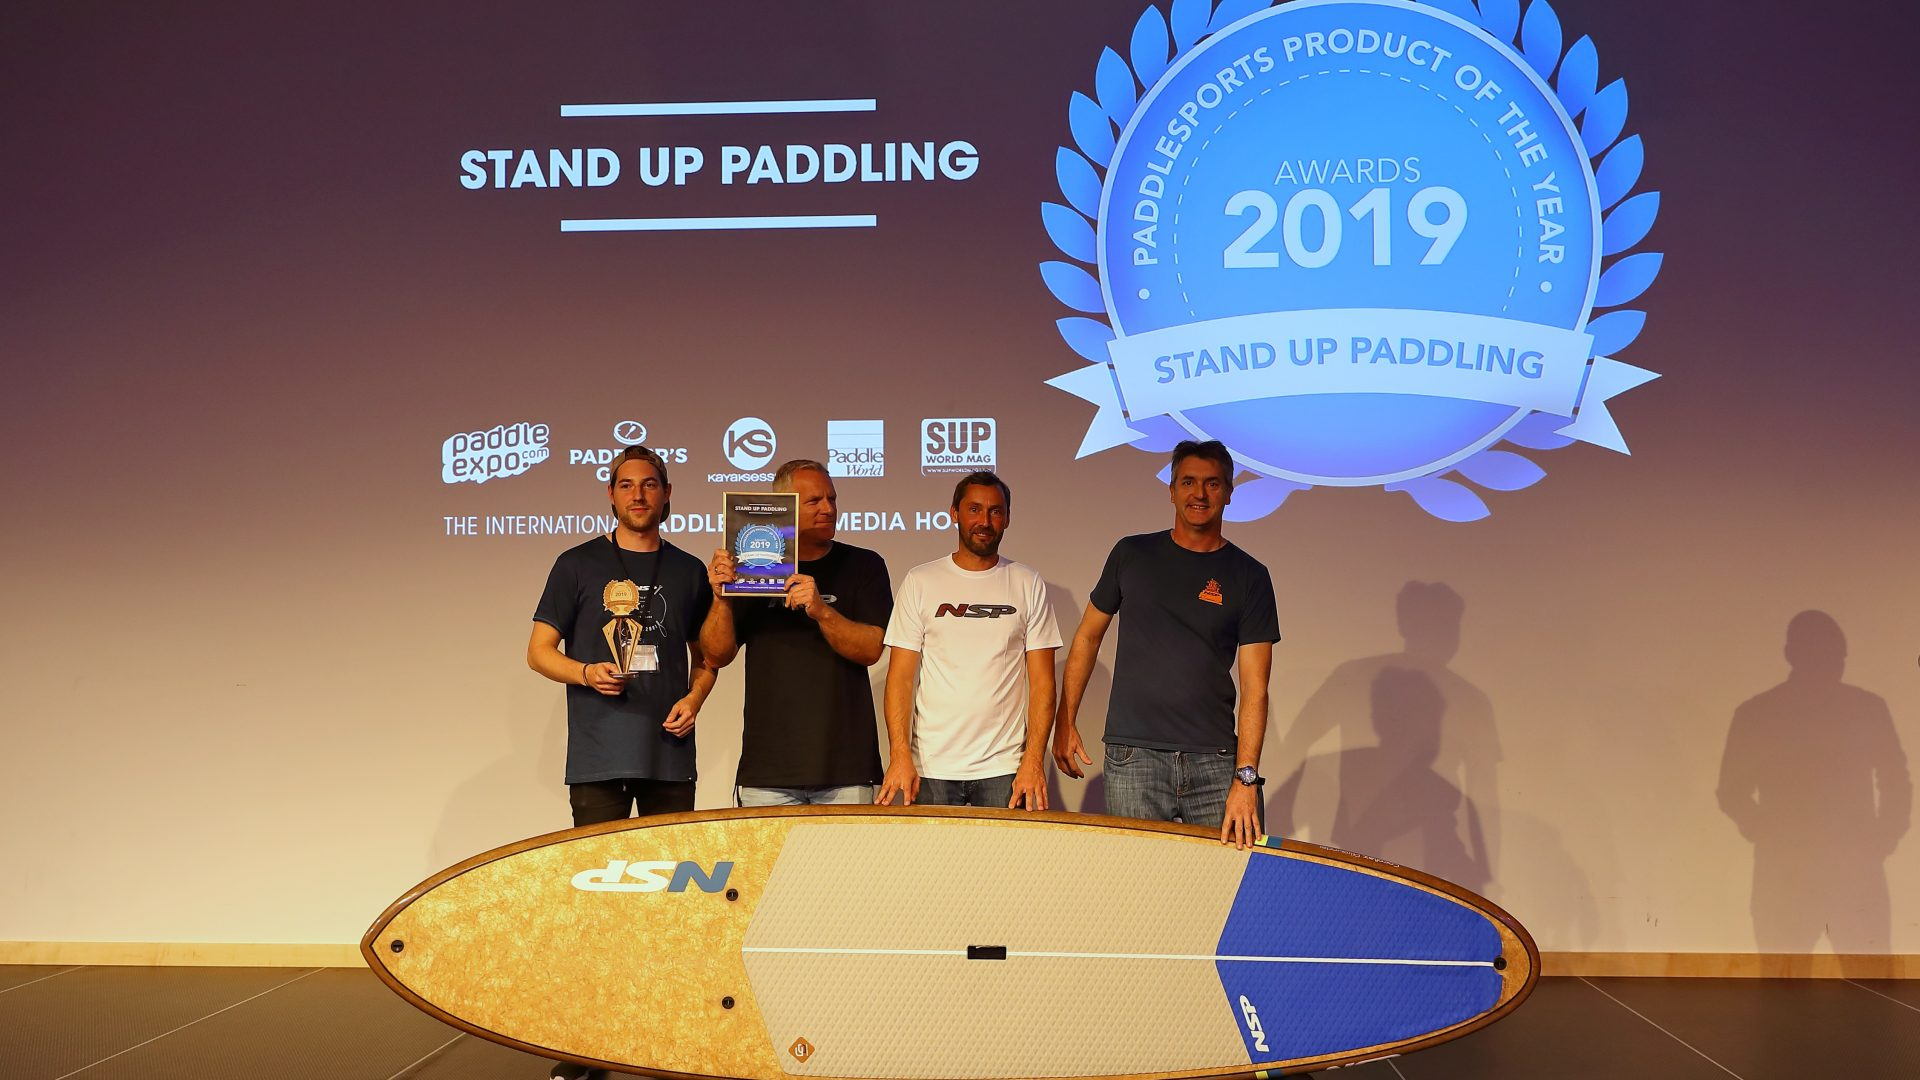 12 Awards NSP for best paddlesport product